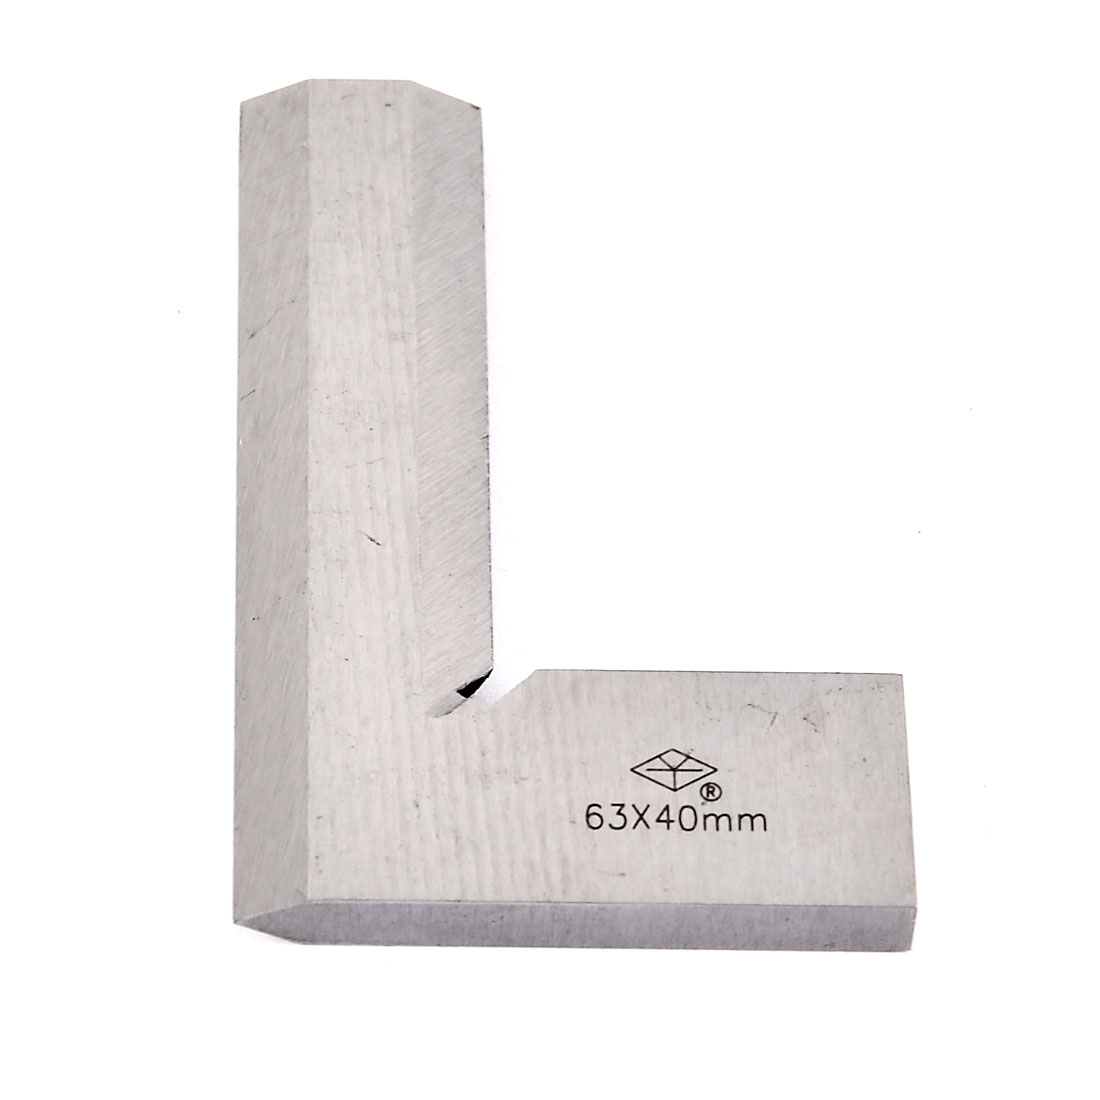 63mm x 40mm Scale Metal L Shaped 90 Degree Angle Try Square Ruler